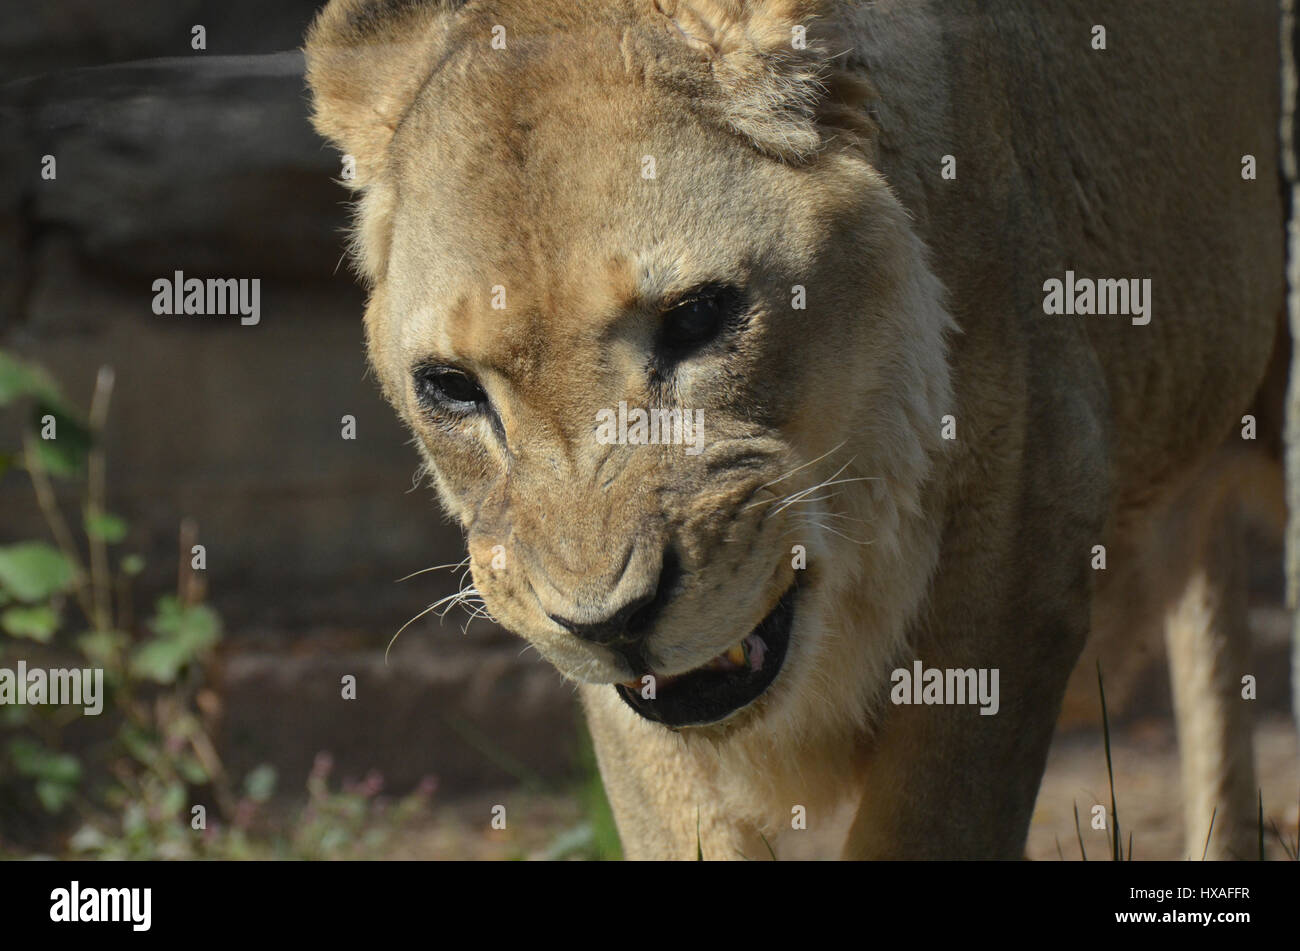 Growling and snarling lioness with her teeth showing. - Stock Image